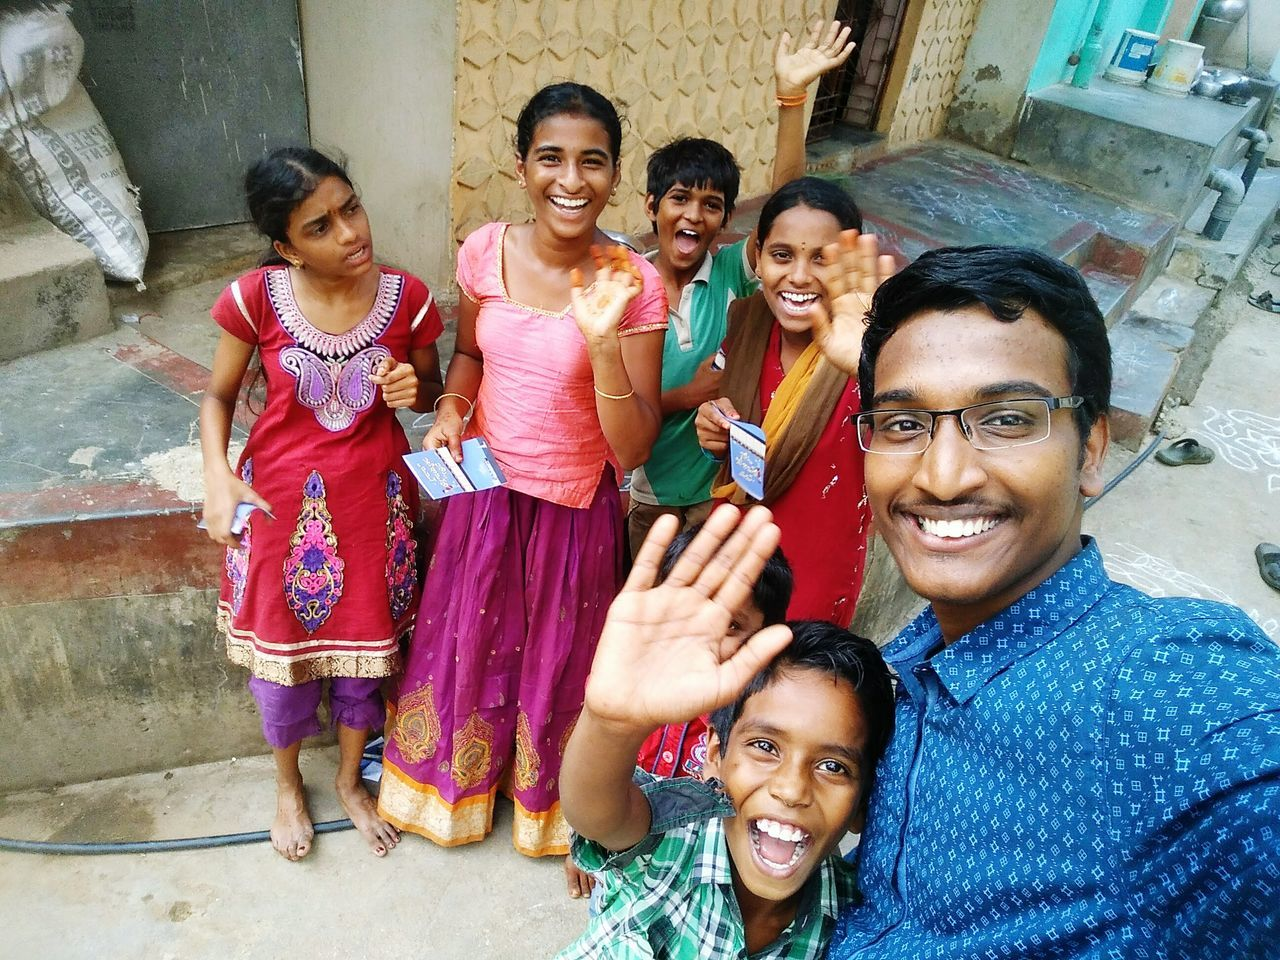 looking at camera, portrait, smiling, boys, happiness, girls, childhood, cheerful, cultures, standing, child, togetherness, built structure, outdoors, real people, architecture, building exterior, young adult, group of people, men, day, eyeglasses, bonding, multi colored, sari, human body part, friendship, adult, holi, people